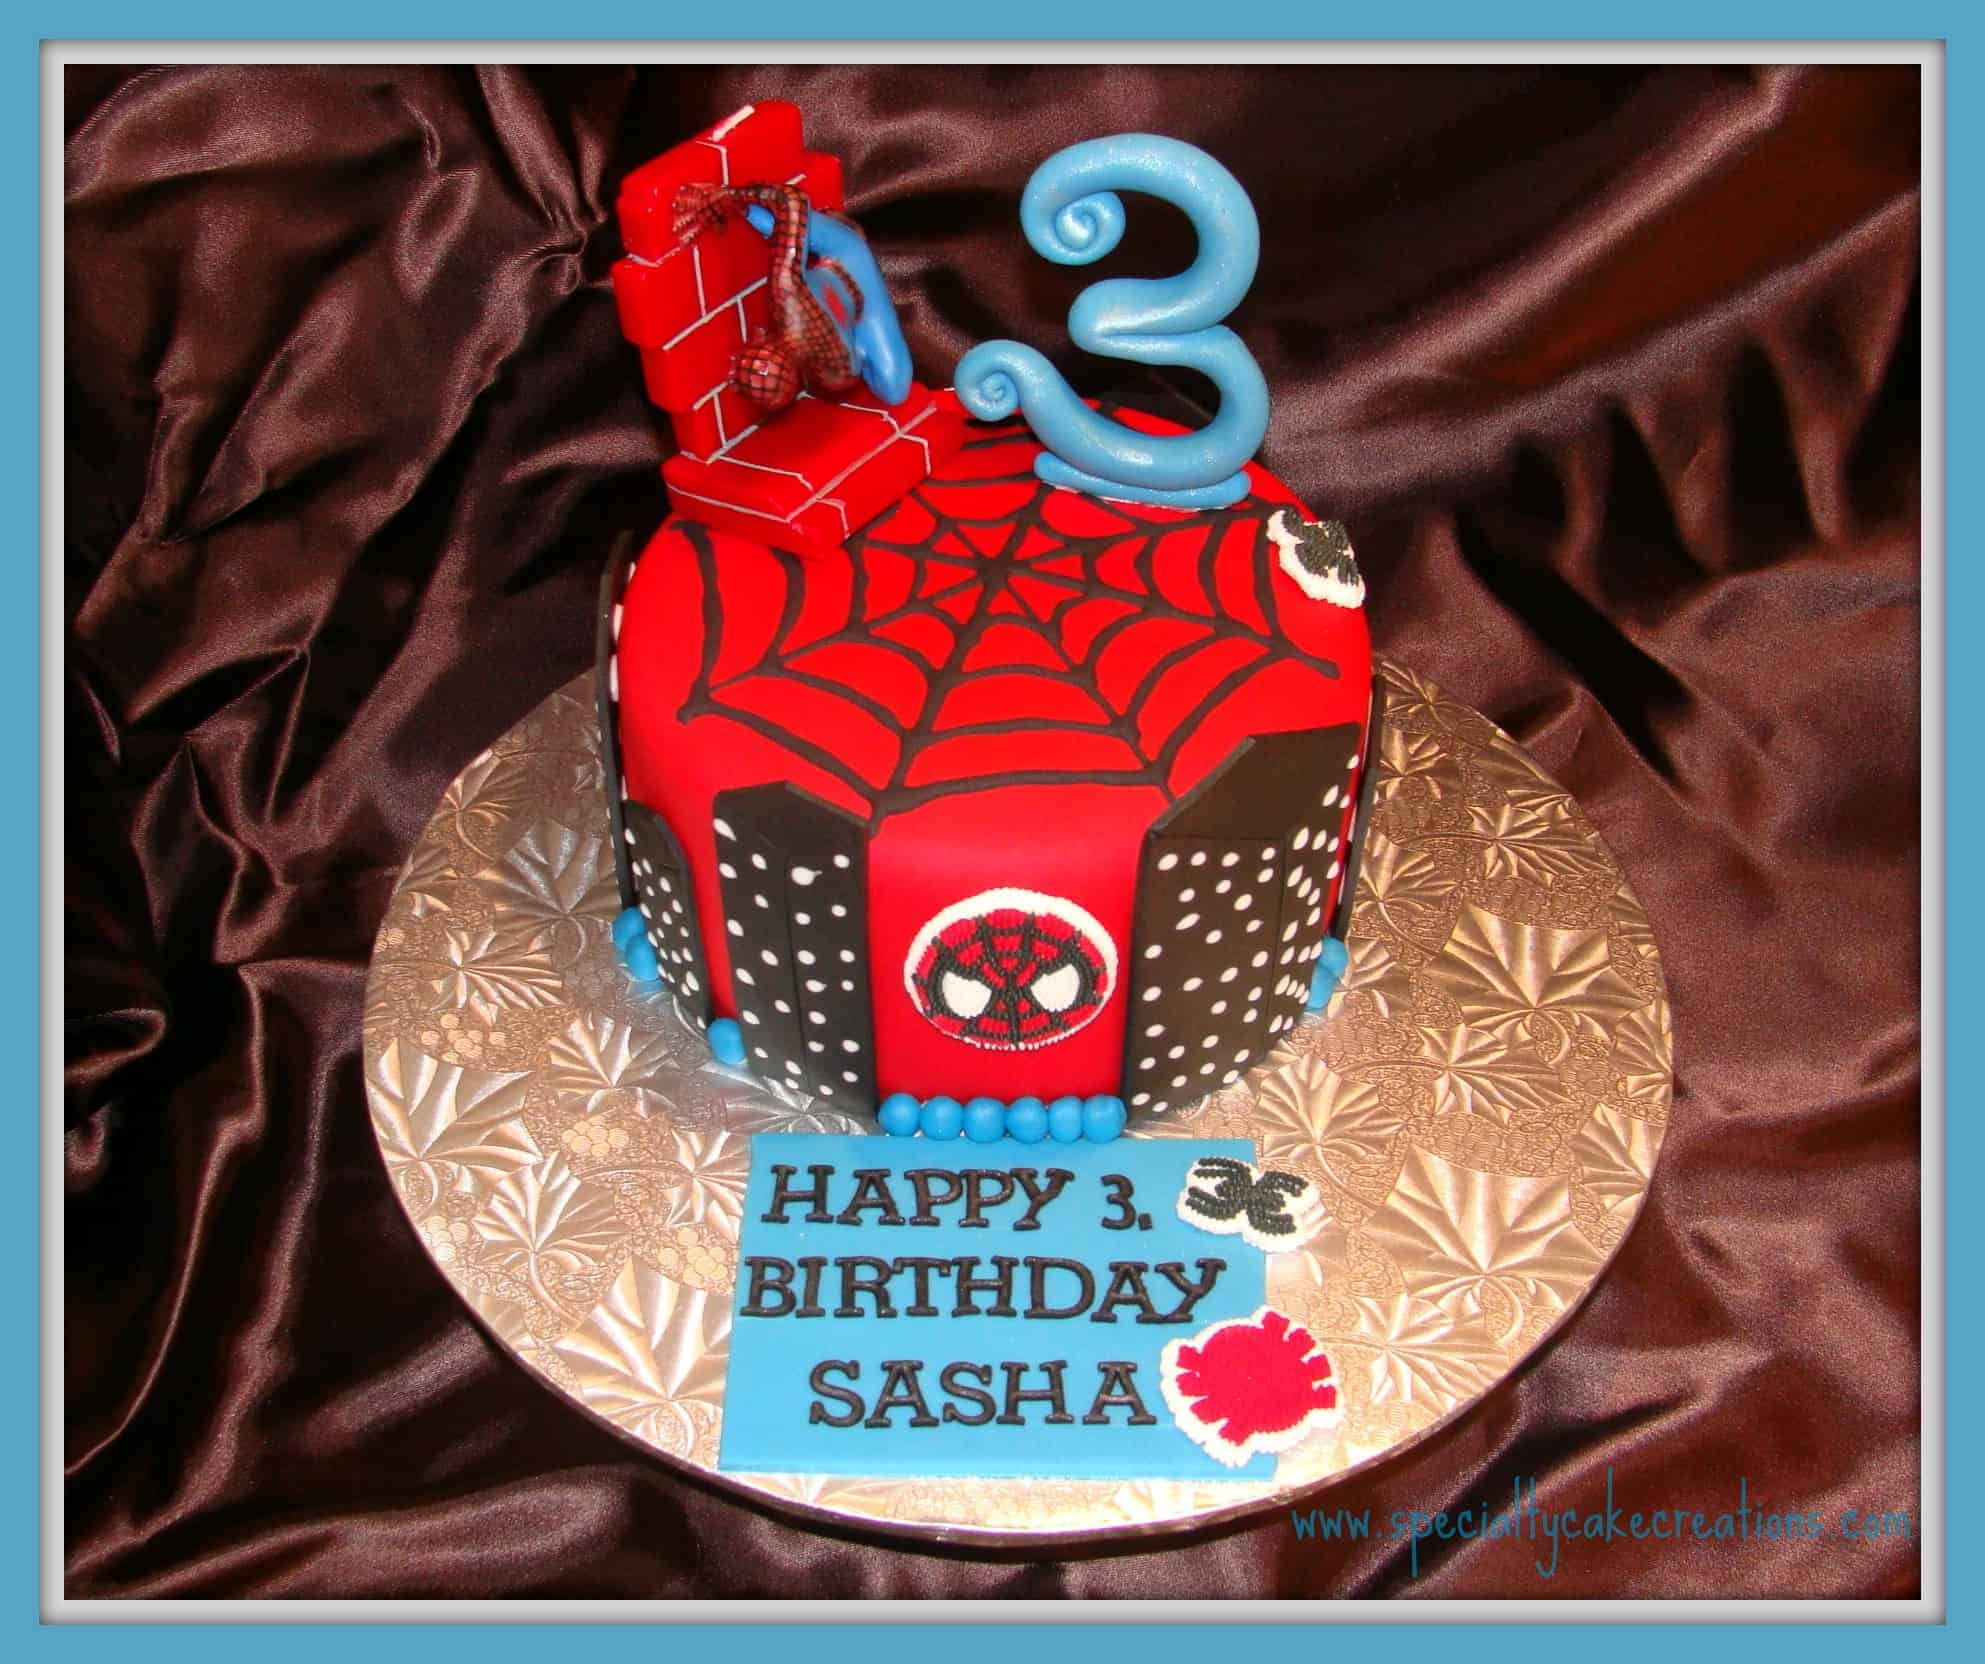 Black spiderman cakes - photo#36